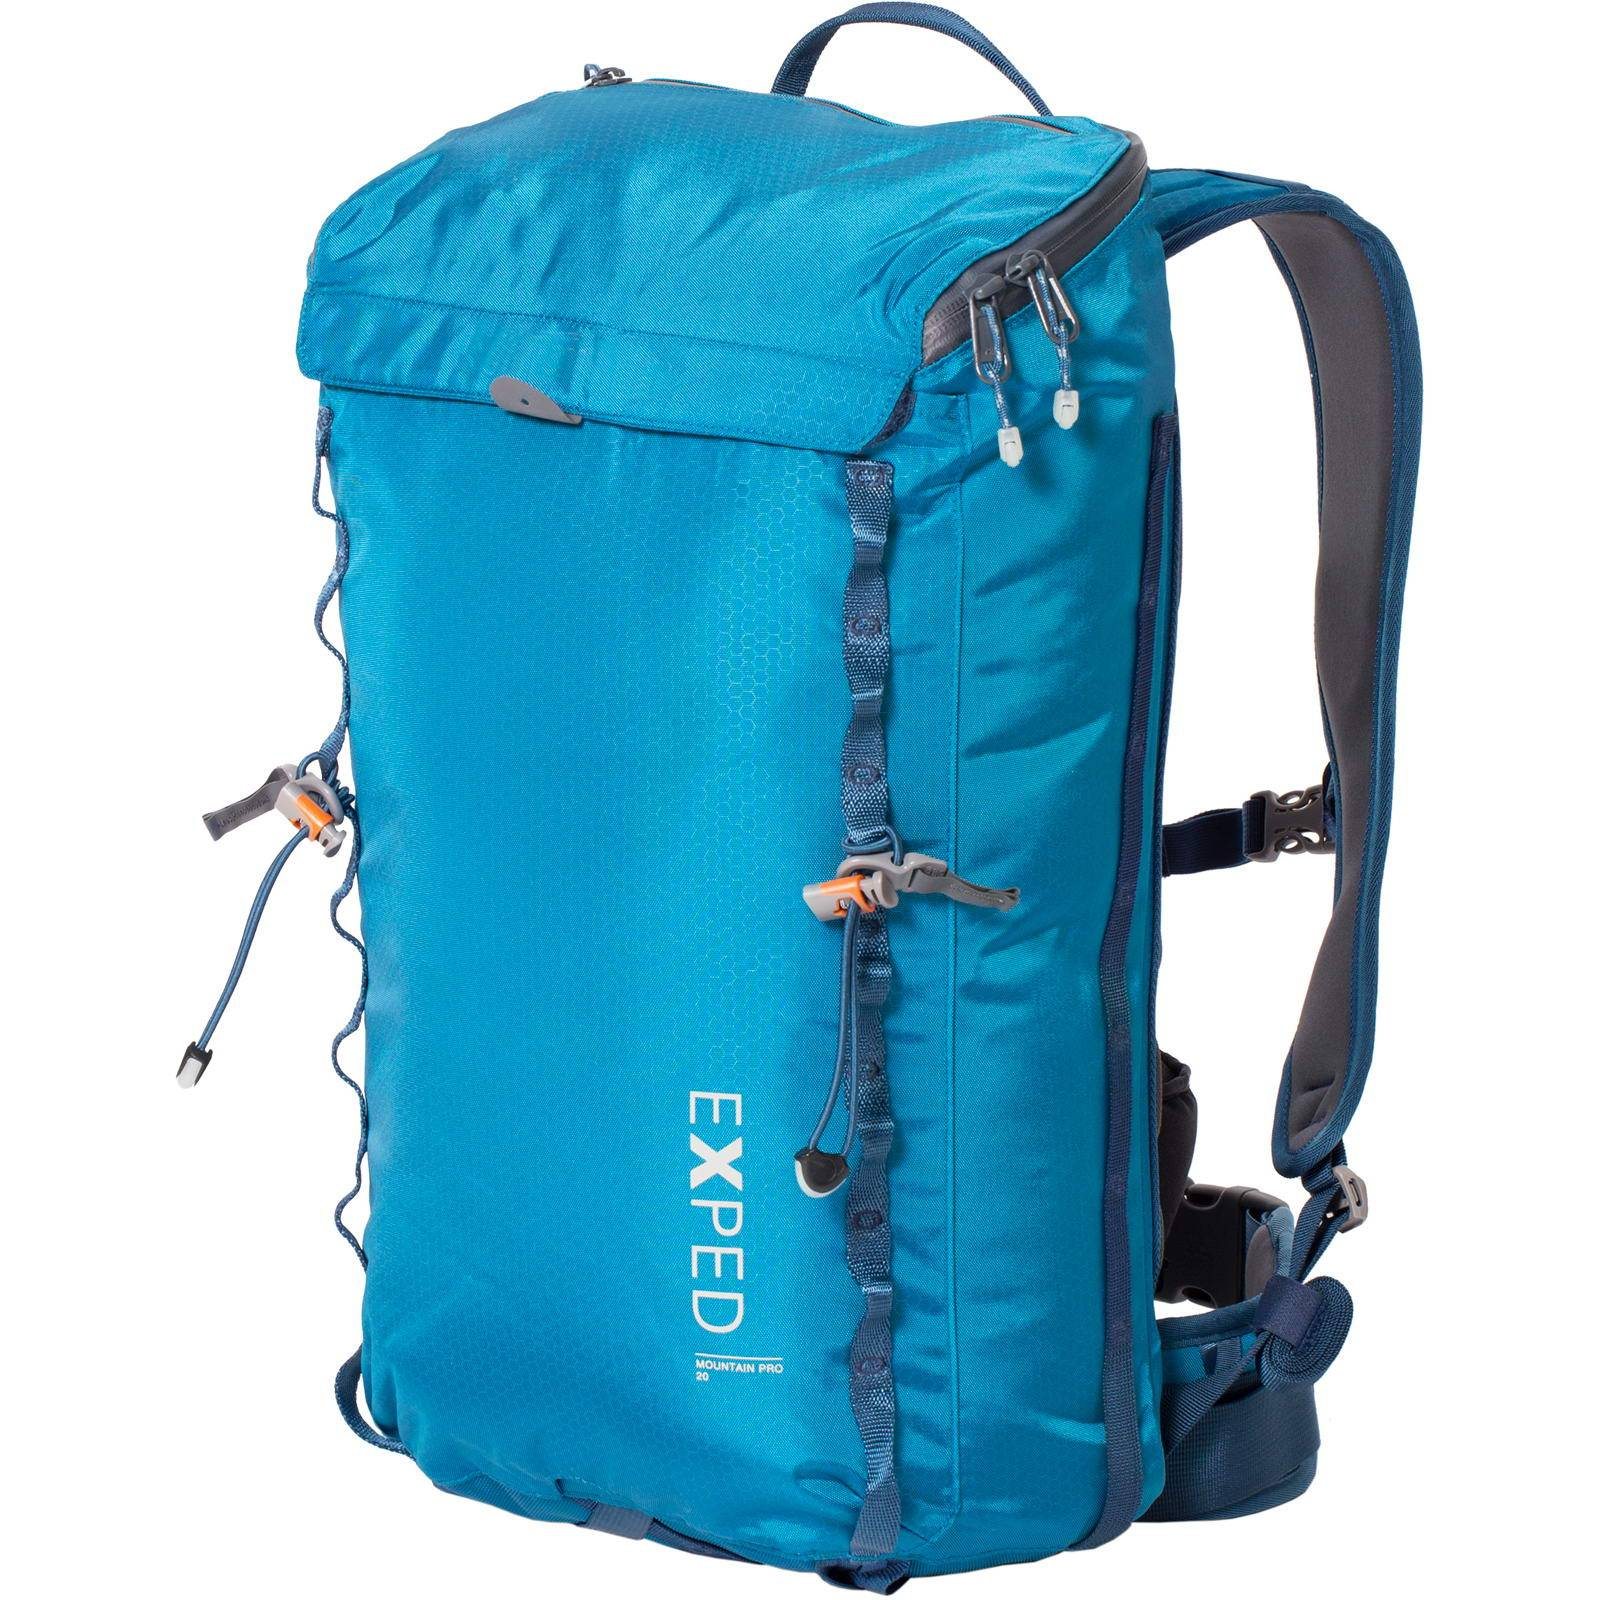 EXPED Mountain Pro 20 - Rucksack deep sea blue